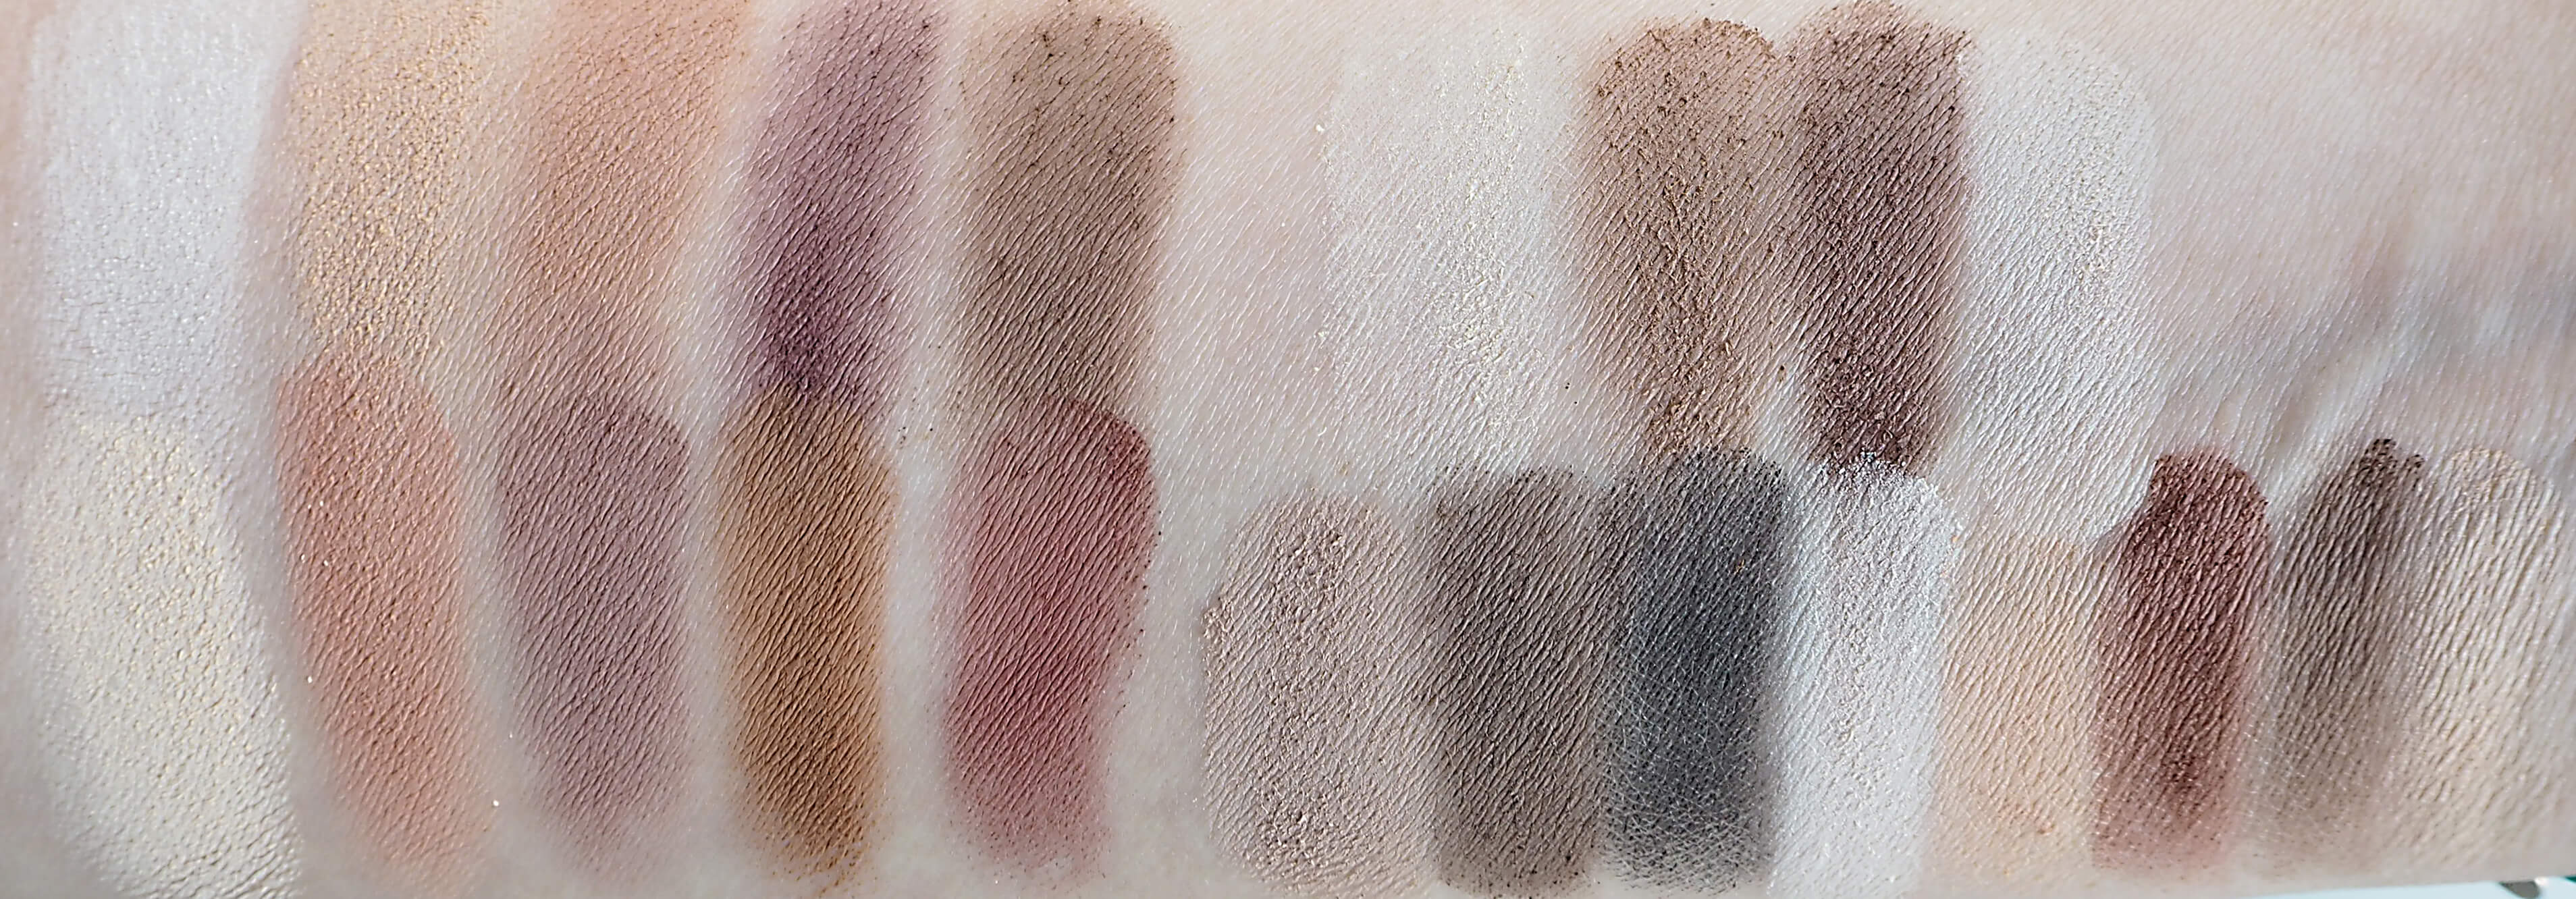 Porównanie Affect Naturally Matt do Kat Von D Light and Shade Eyes swatches